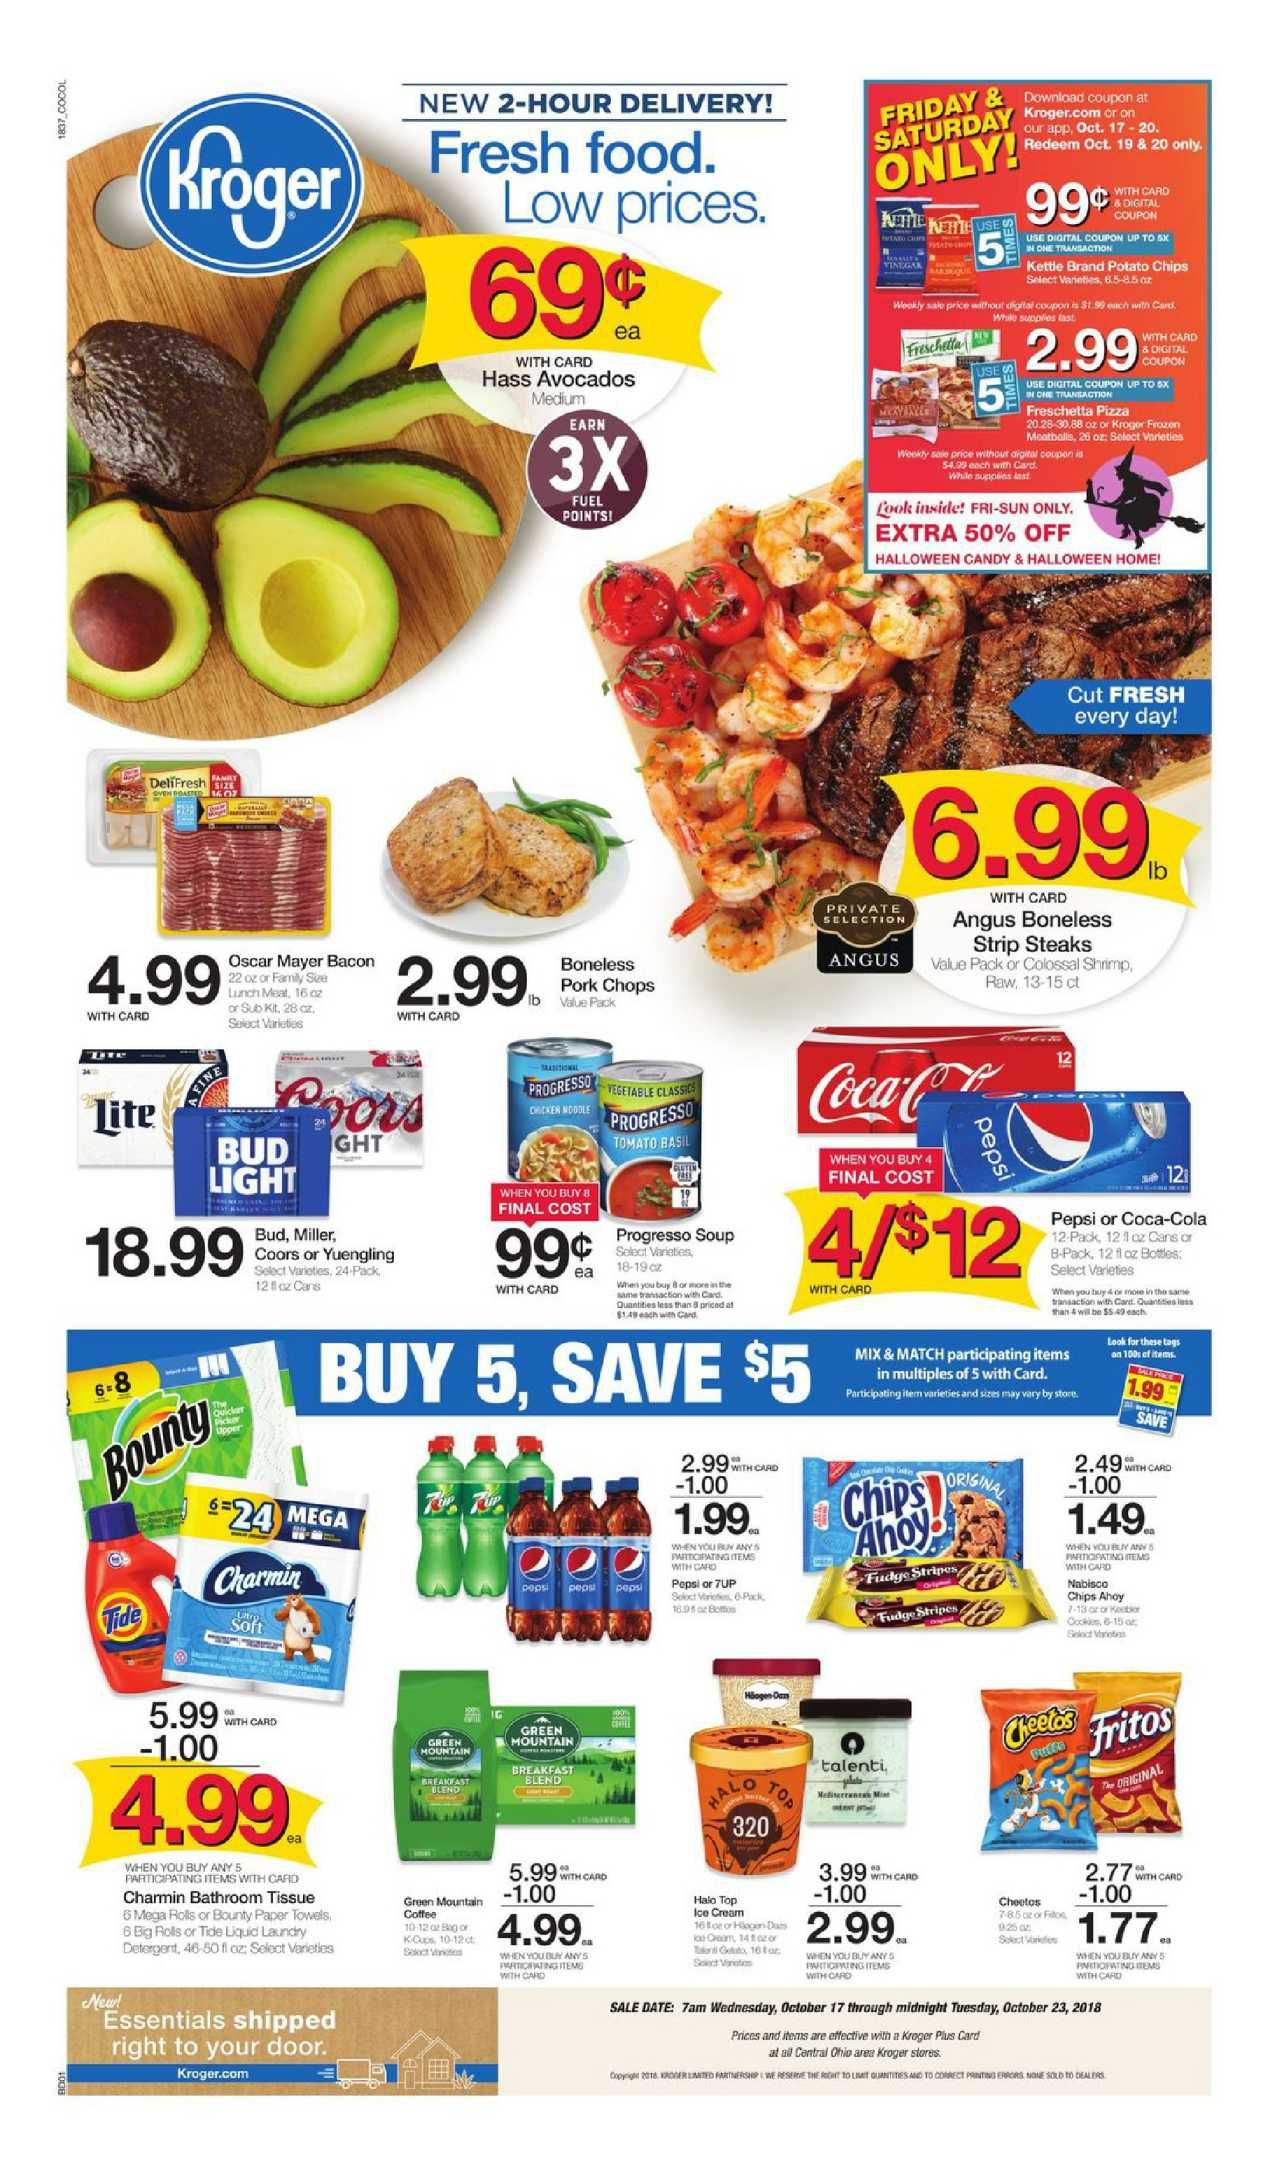 Kroger Weekly Ad Flyer July 17 - 23, 2019 | Weekly Ad